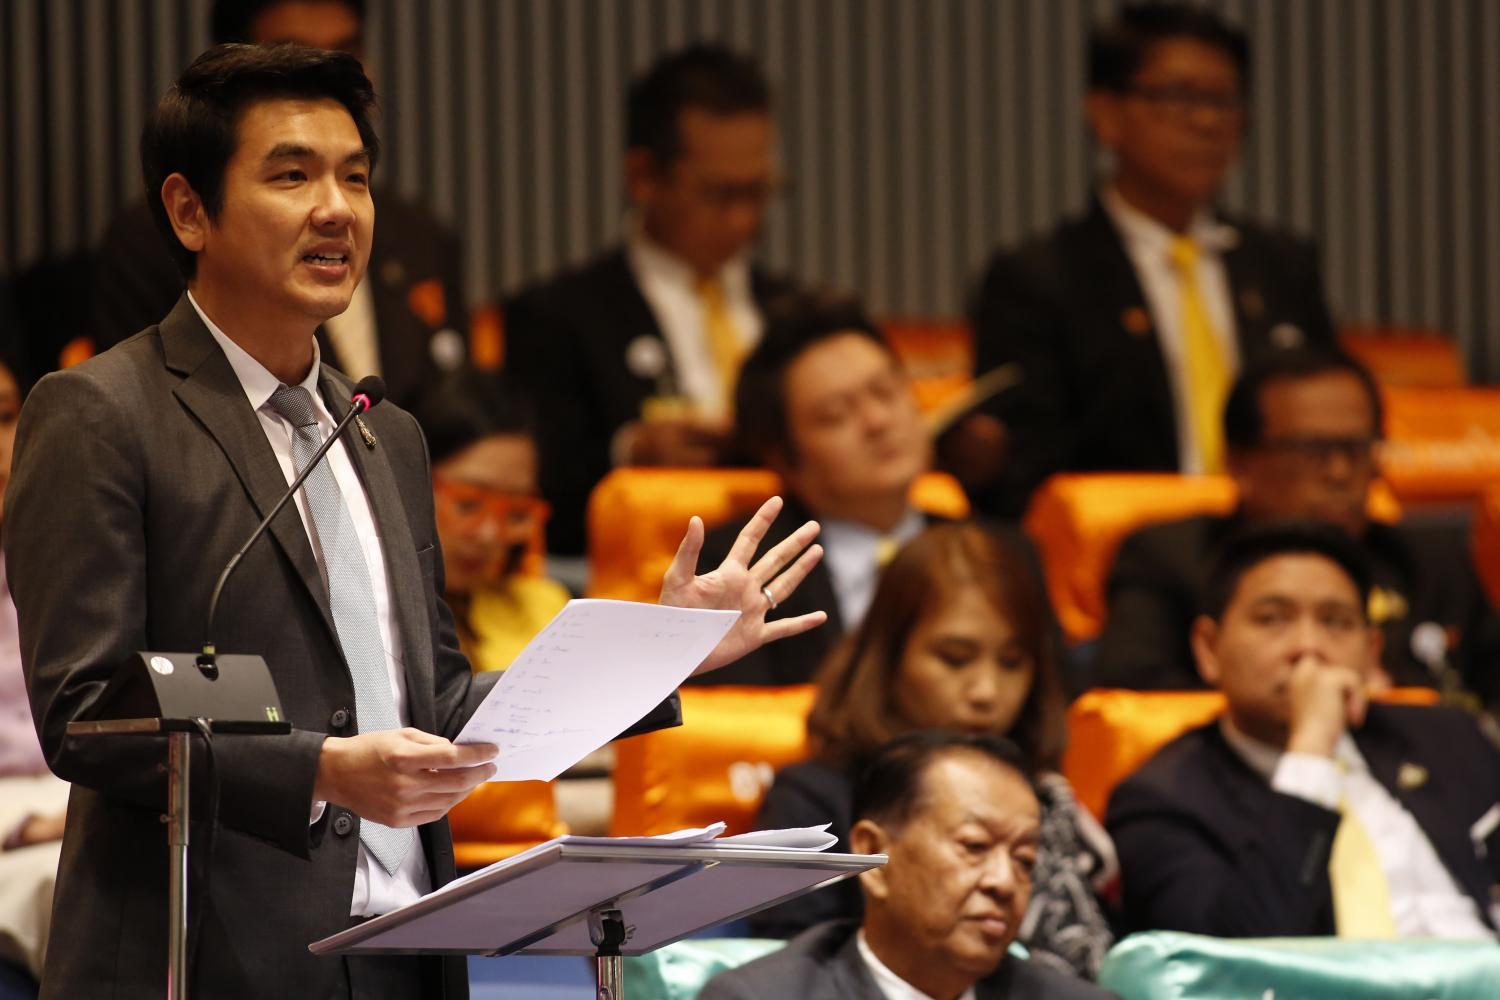 Future Forward Party secretary-general and MP Piyabutr Saengkanokkul speaks in parliament in July. He has declared that he owns more than 2,500 books worth more than one million baht.PATTARAPONG CHATPATTARASILL